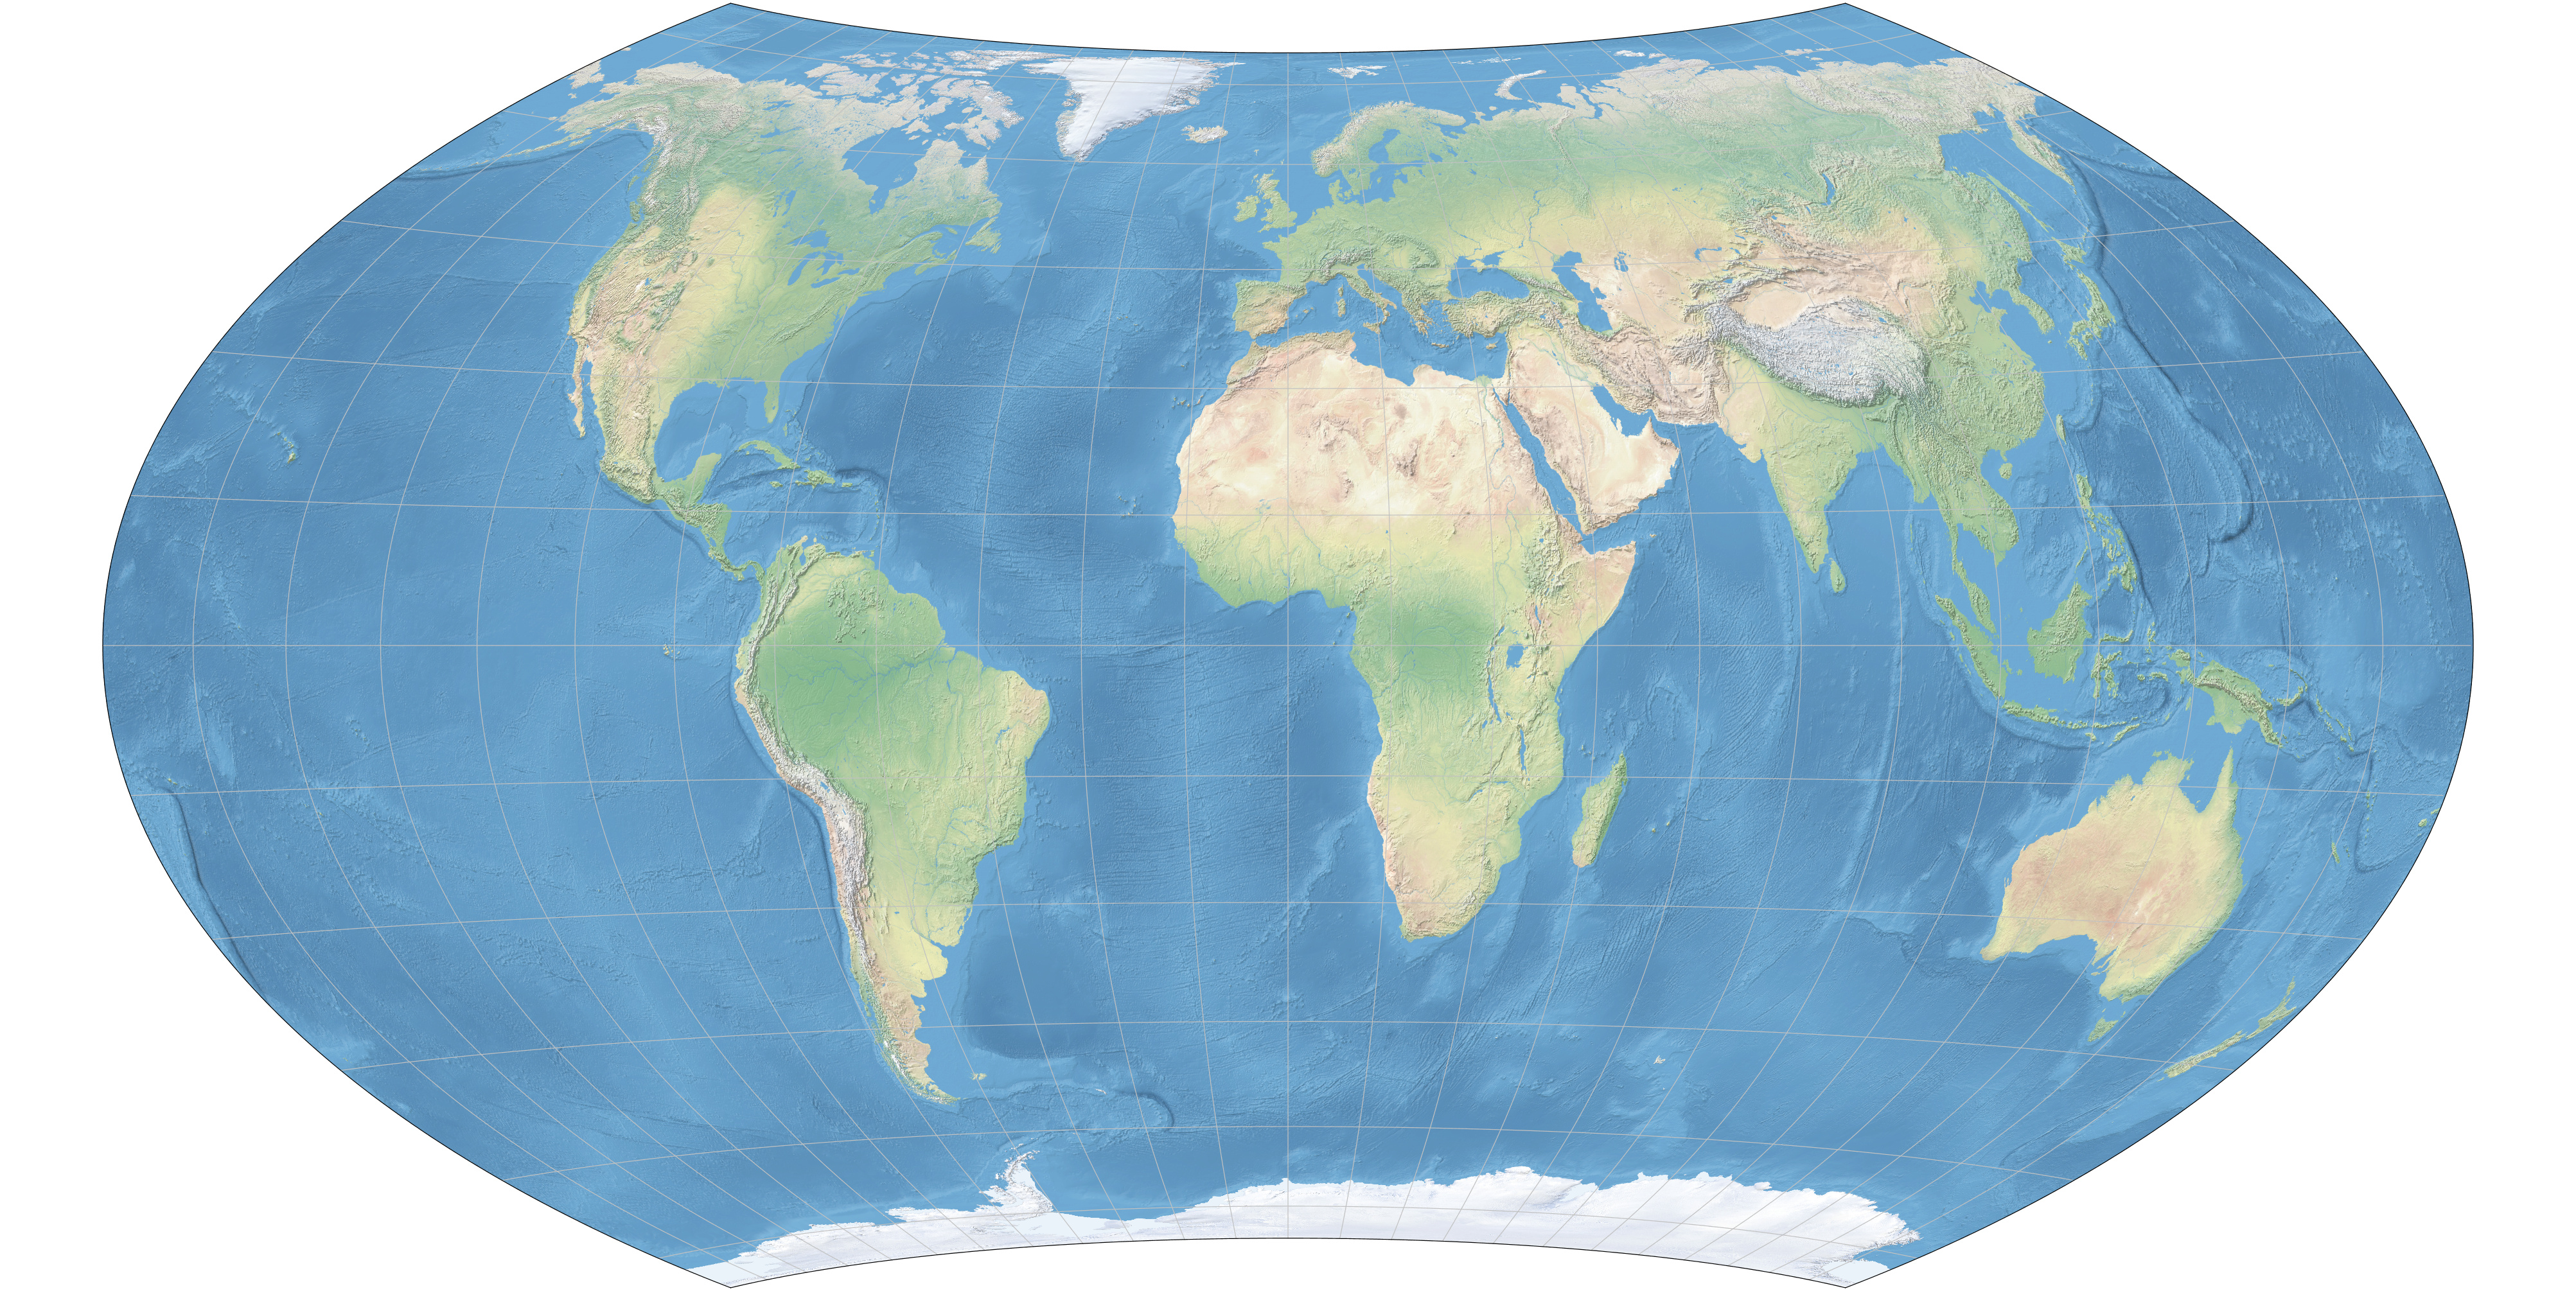 Filewagner vii world map projection brightg wikimedia commons filewagner vii world map projection brightg gumiabroncs Choice Image